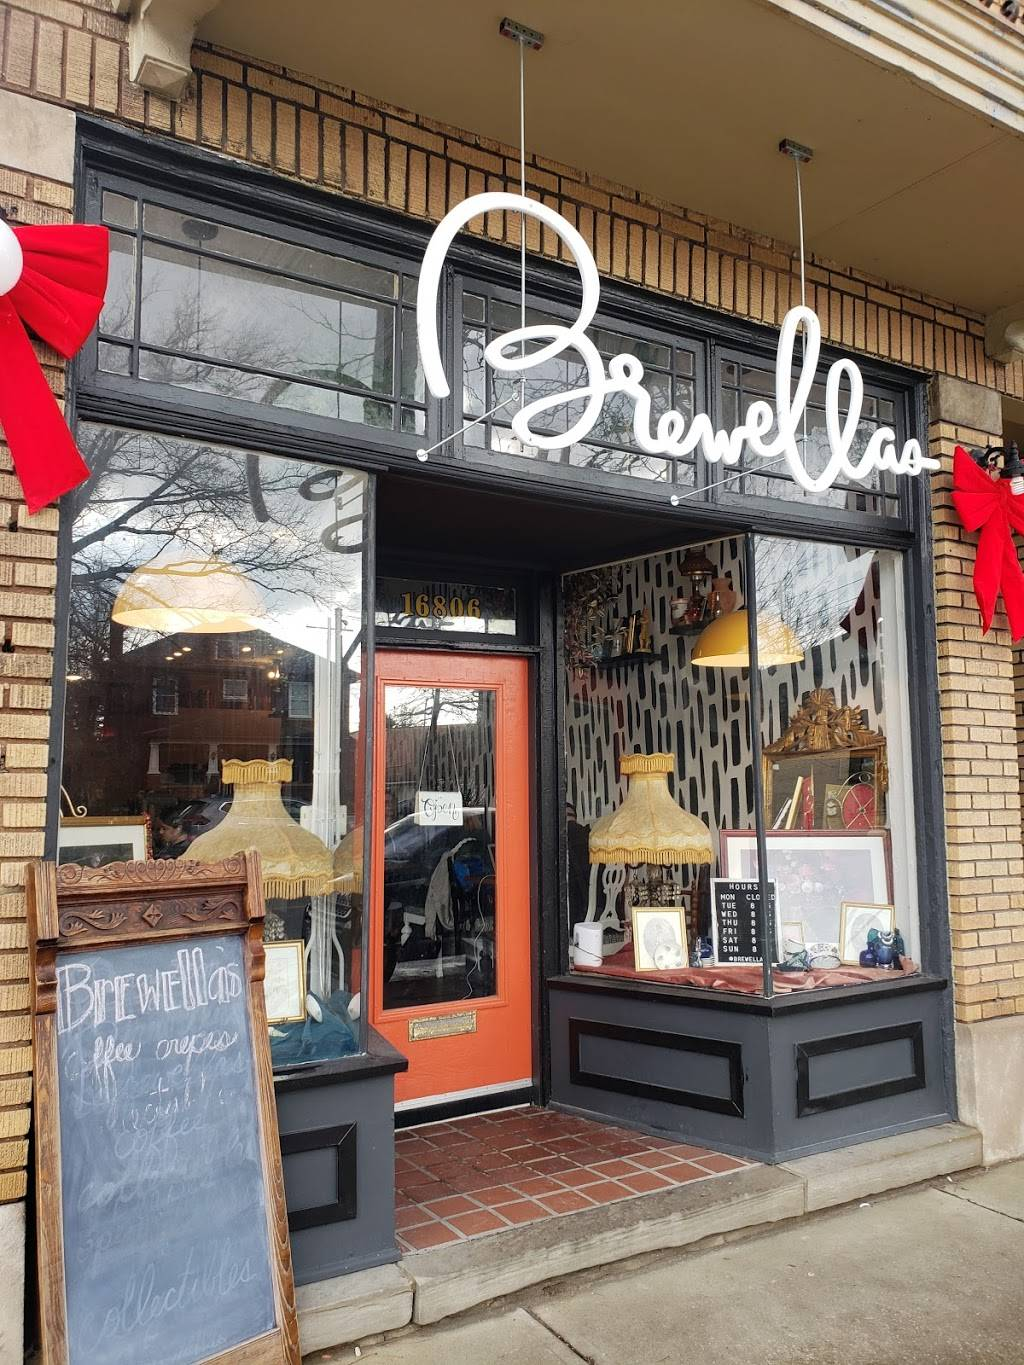 Brewellas Coffee, Crêpes & Collectibles | cafe | 16806 Madison Ave, Lakewood, OH 44107, USA | 2167124907 OR +1 216-712-4907